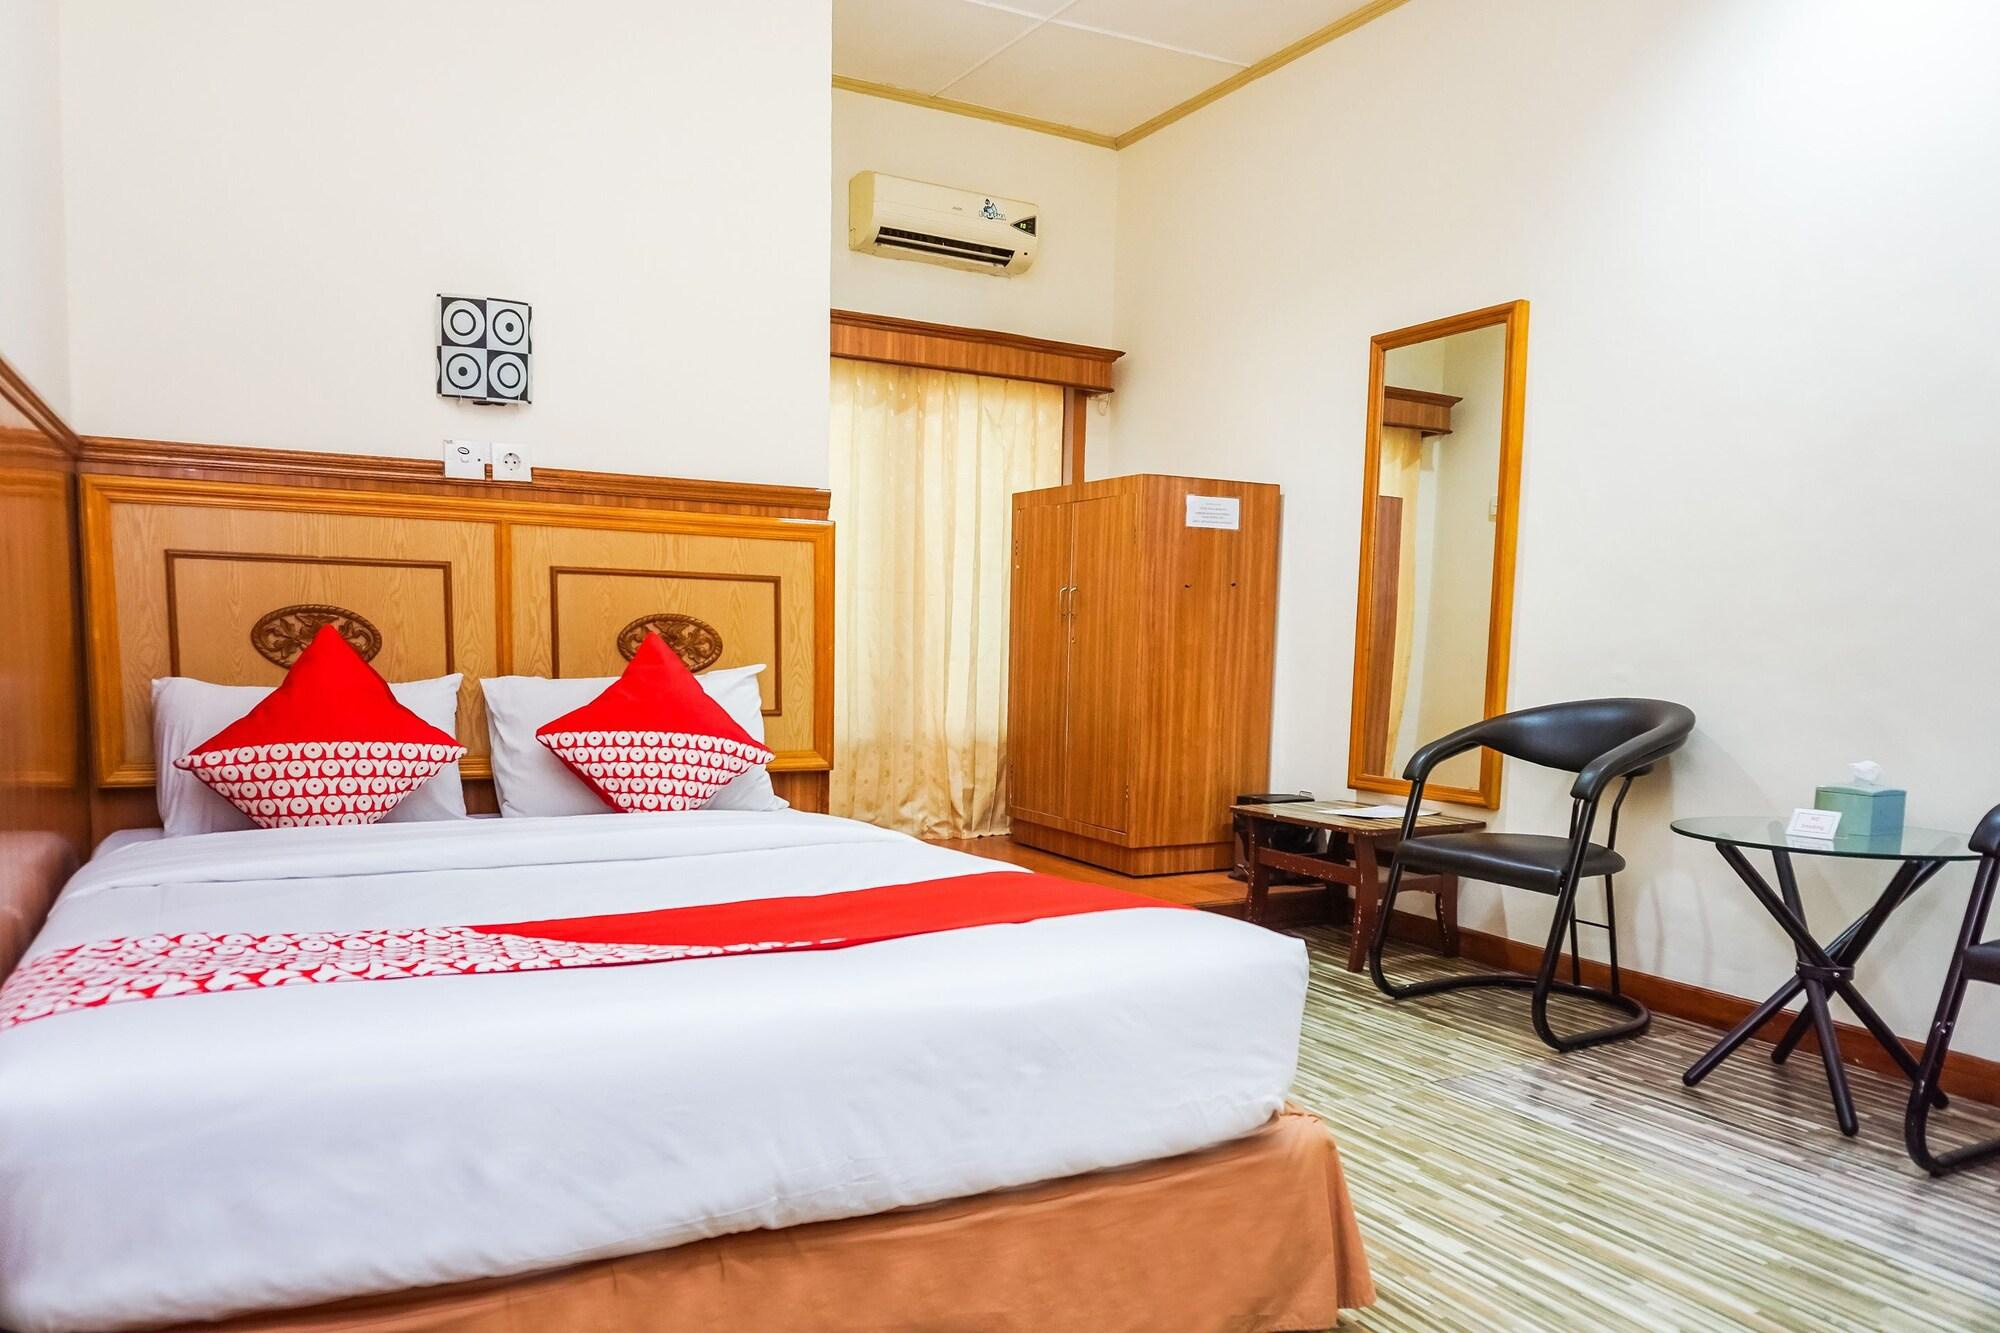 OYO 375 Hotel Bougenville